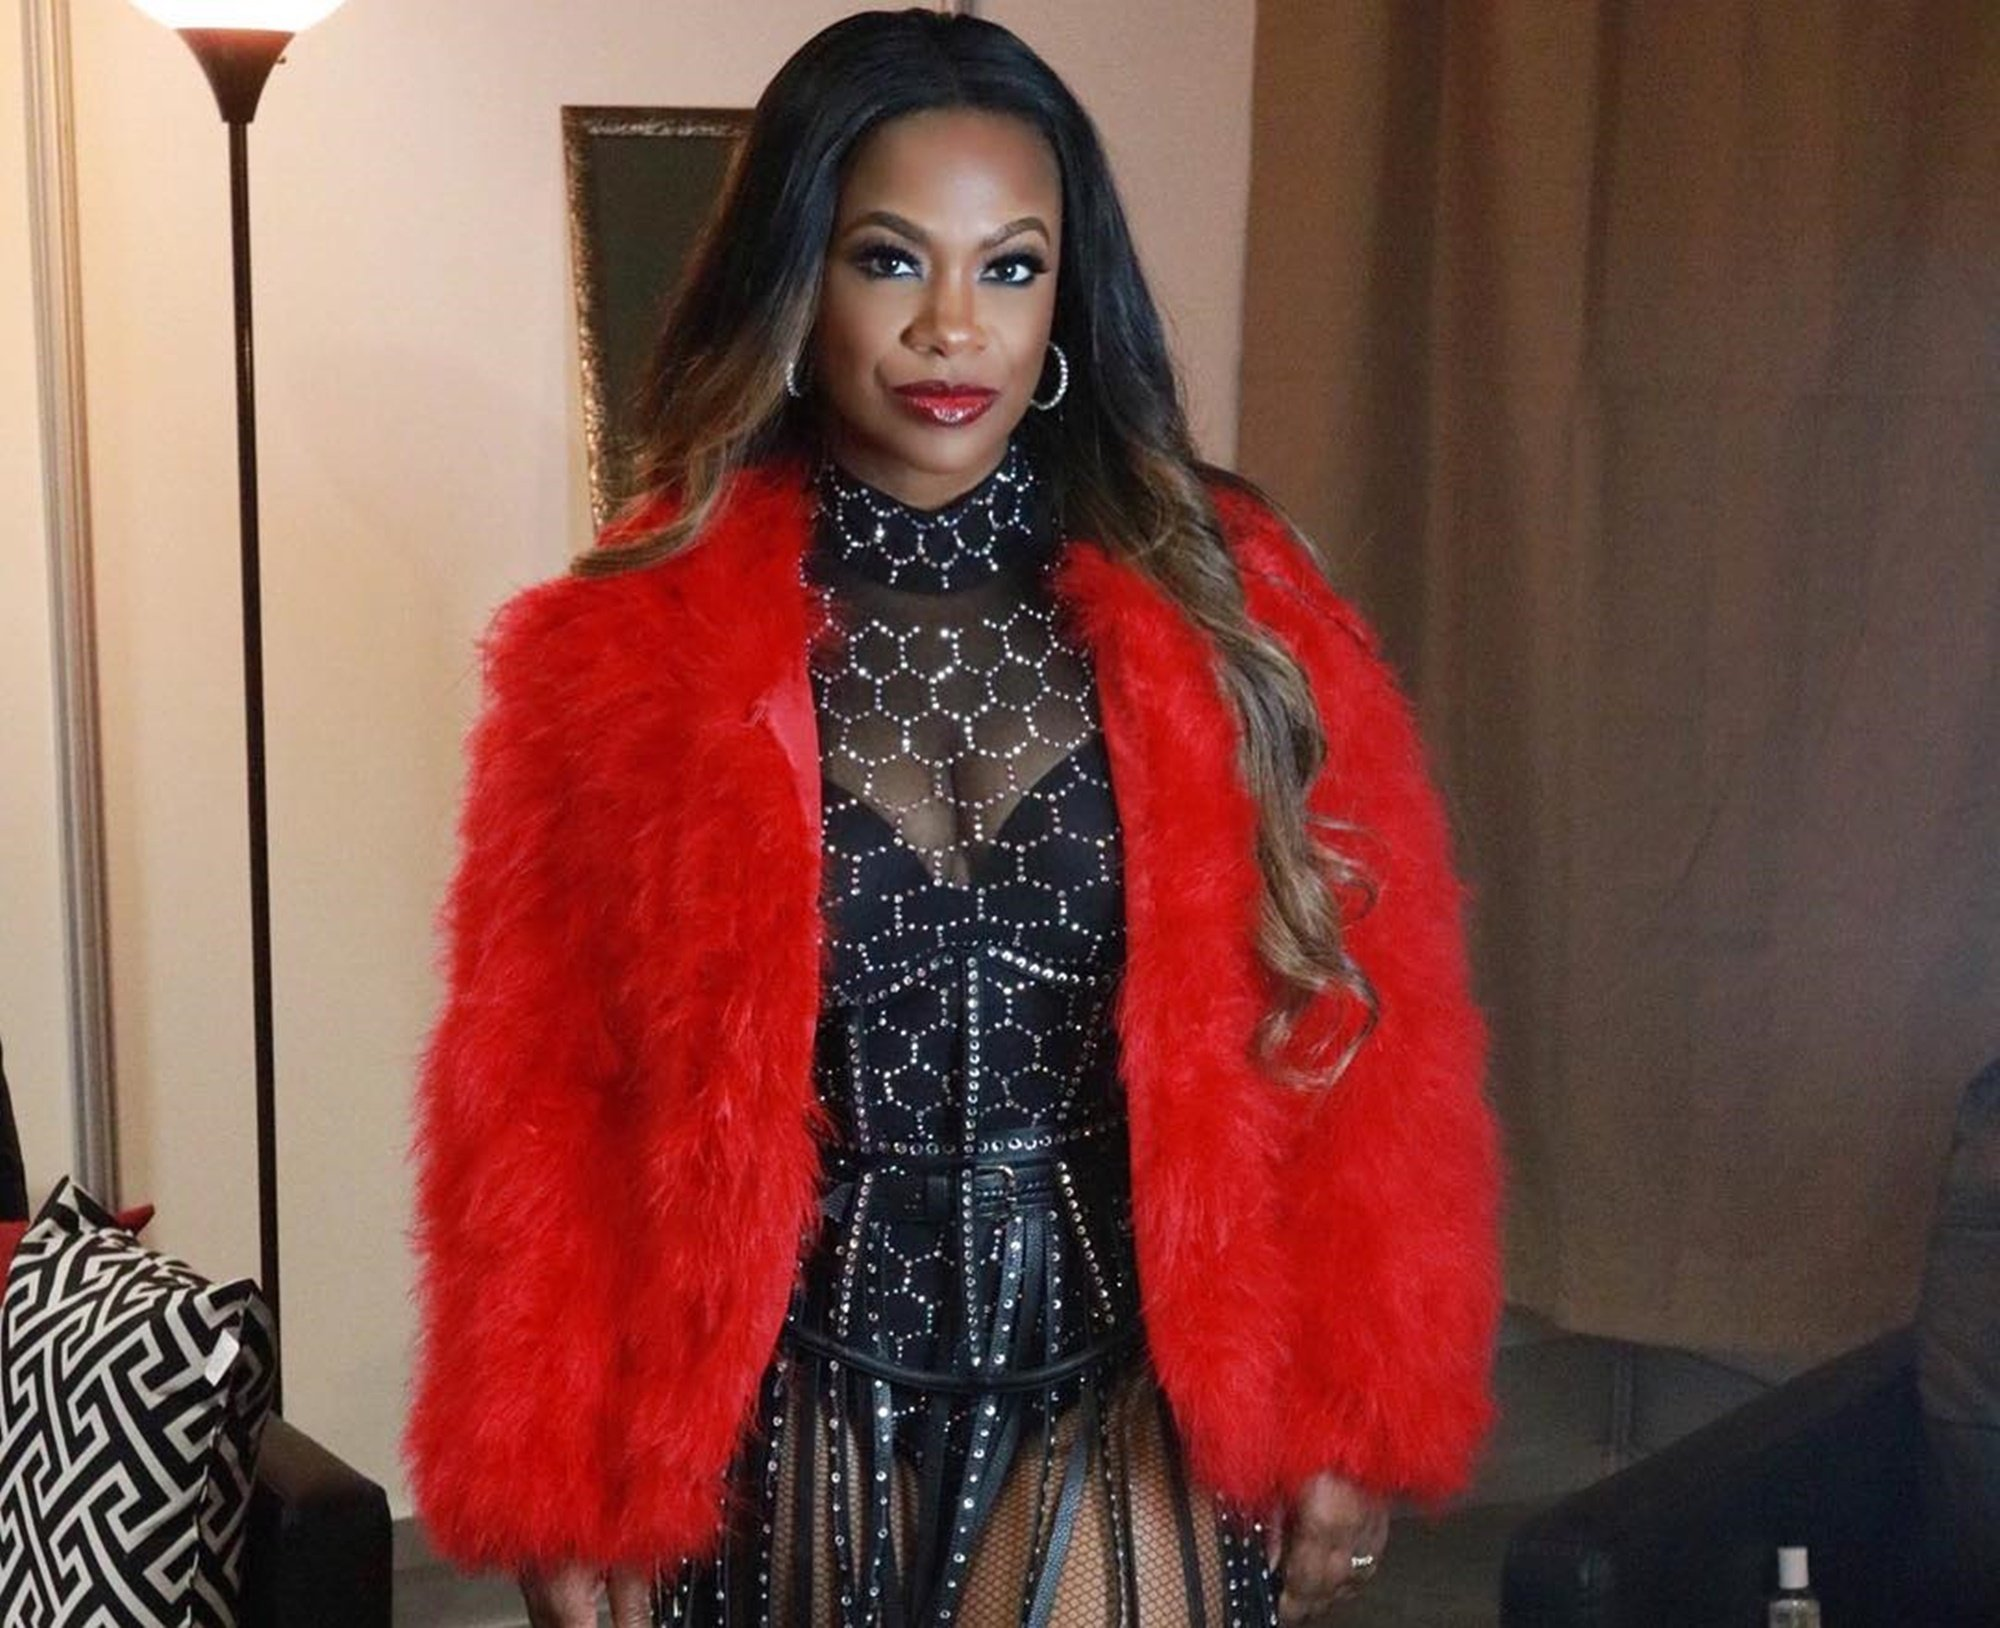 Kandi Burruss Hangs Out With Her Favourite Guys – See Her Photo And Their Elegant Outfits